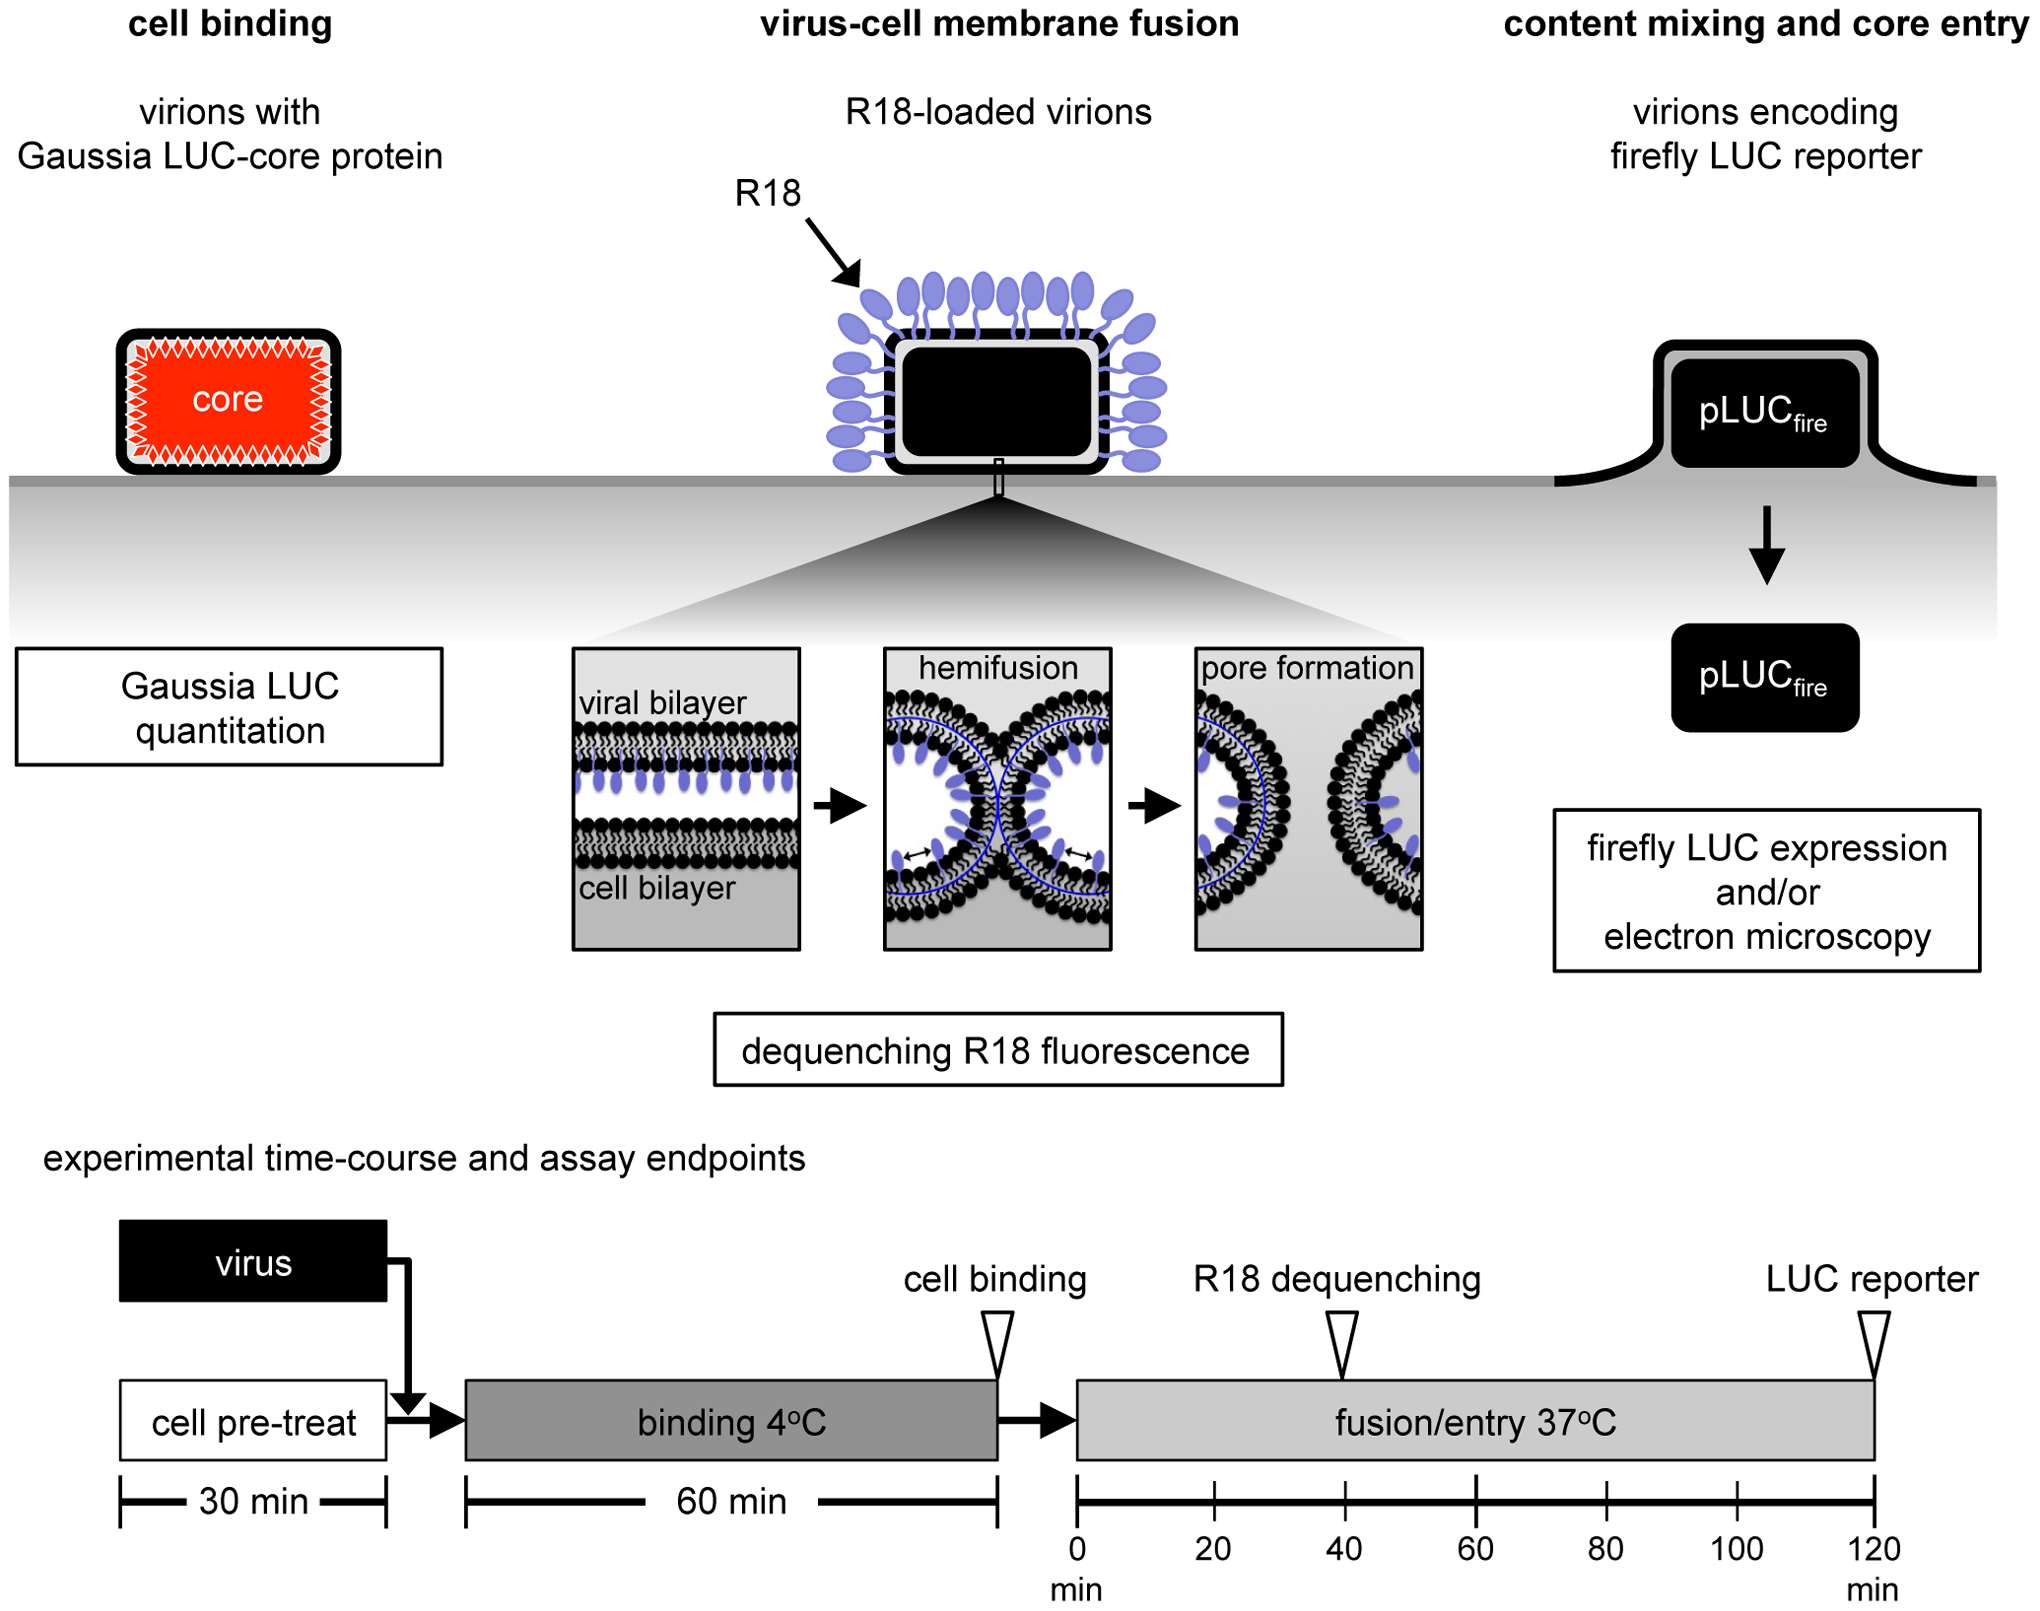 Virion binding, lipid mixing and core entry assays.